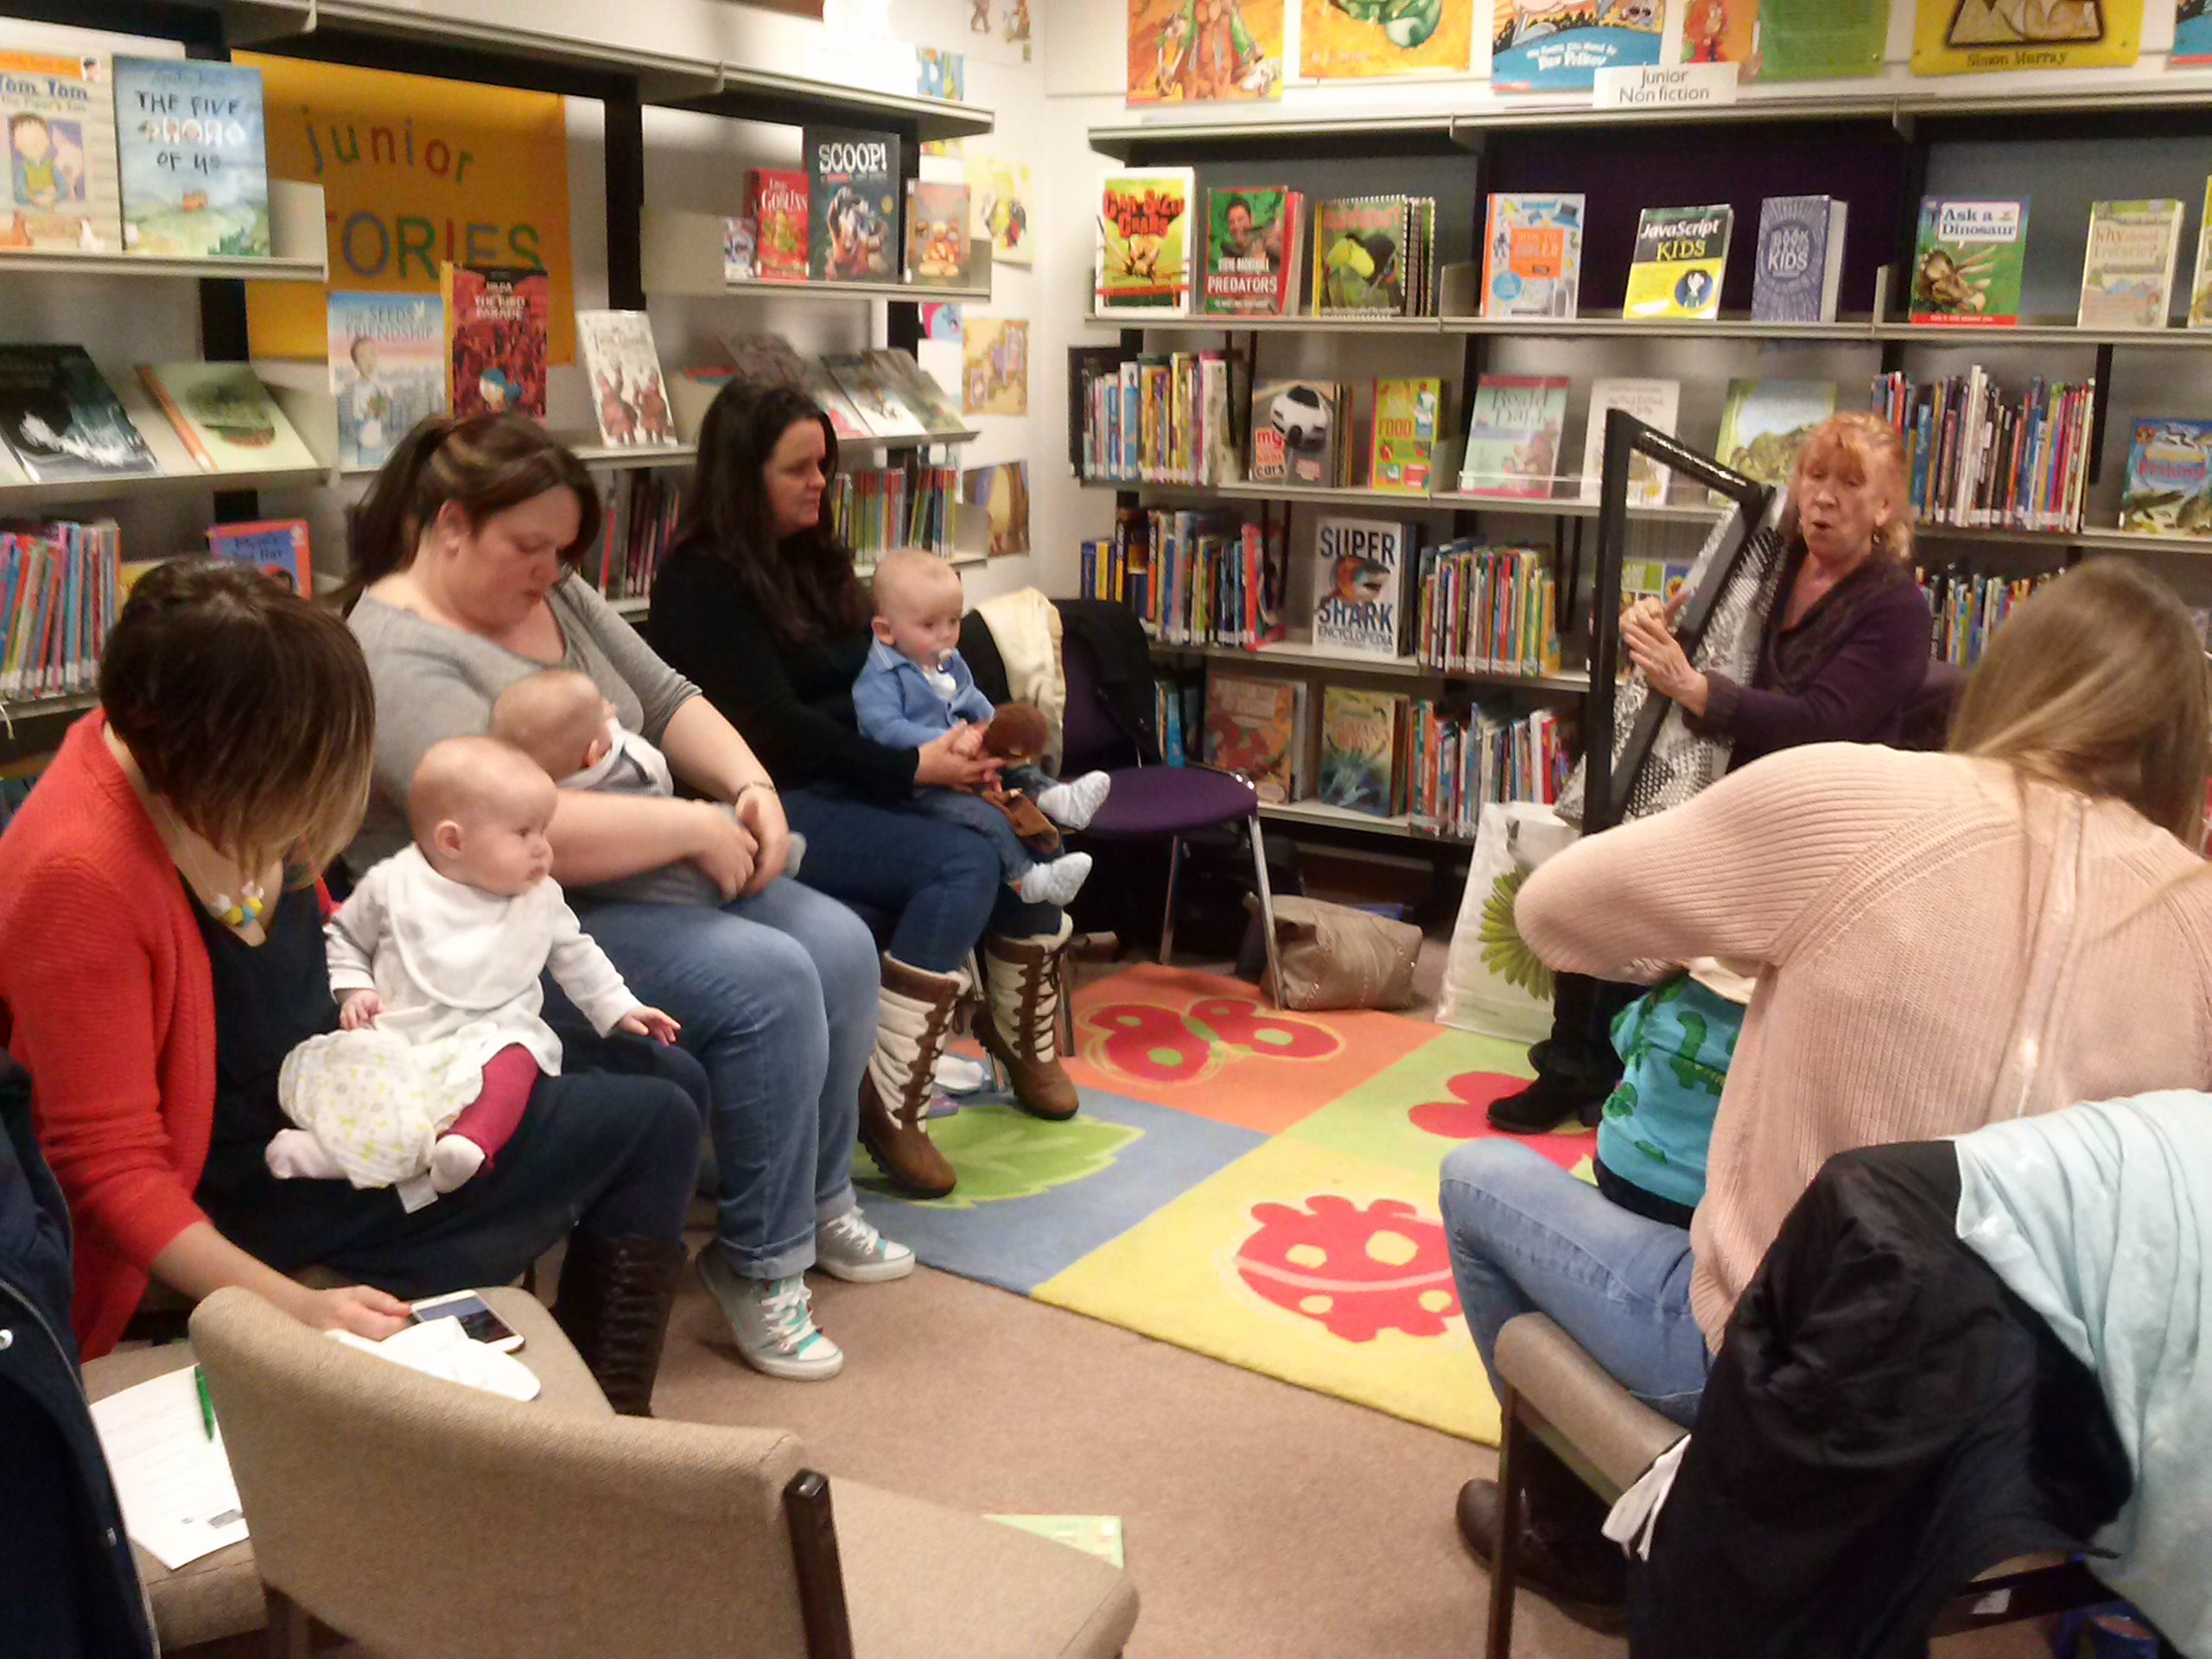 Irene Watt plays the harp for mums and babies at one of the lullaby sessions